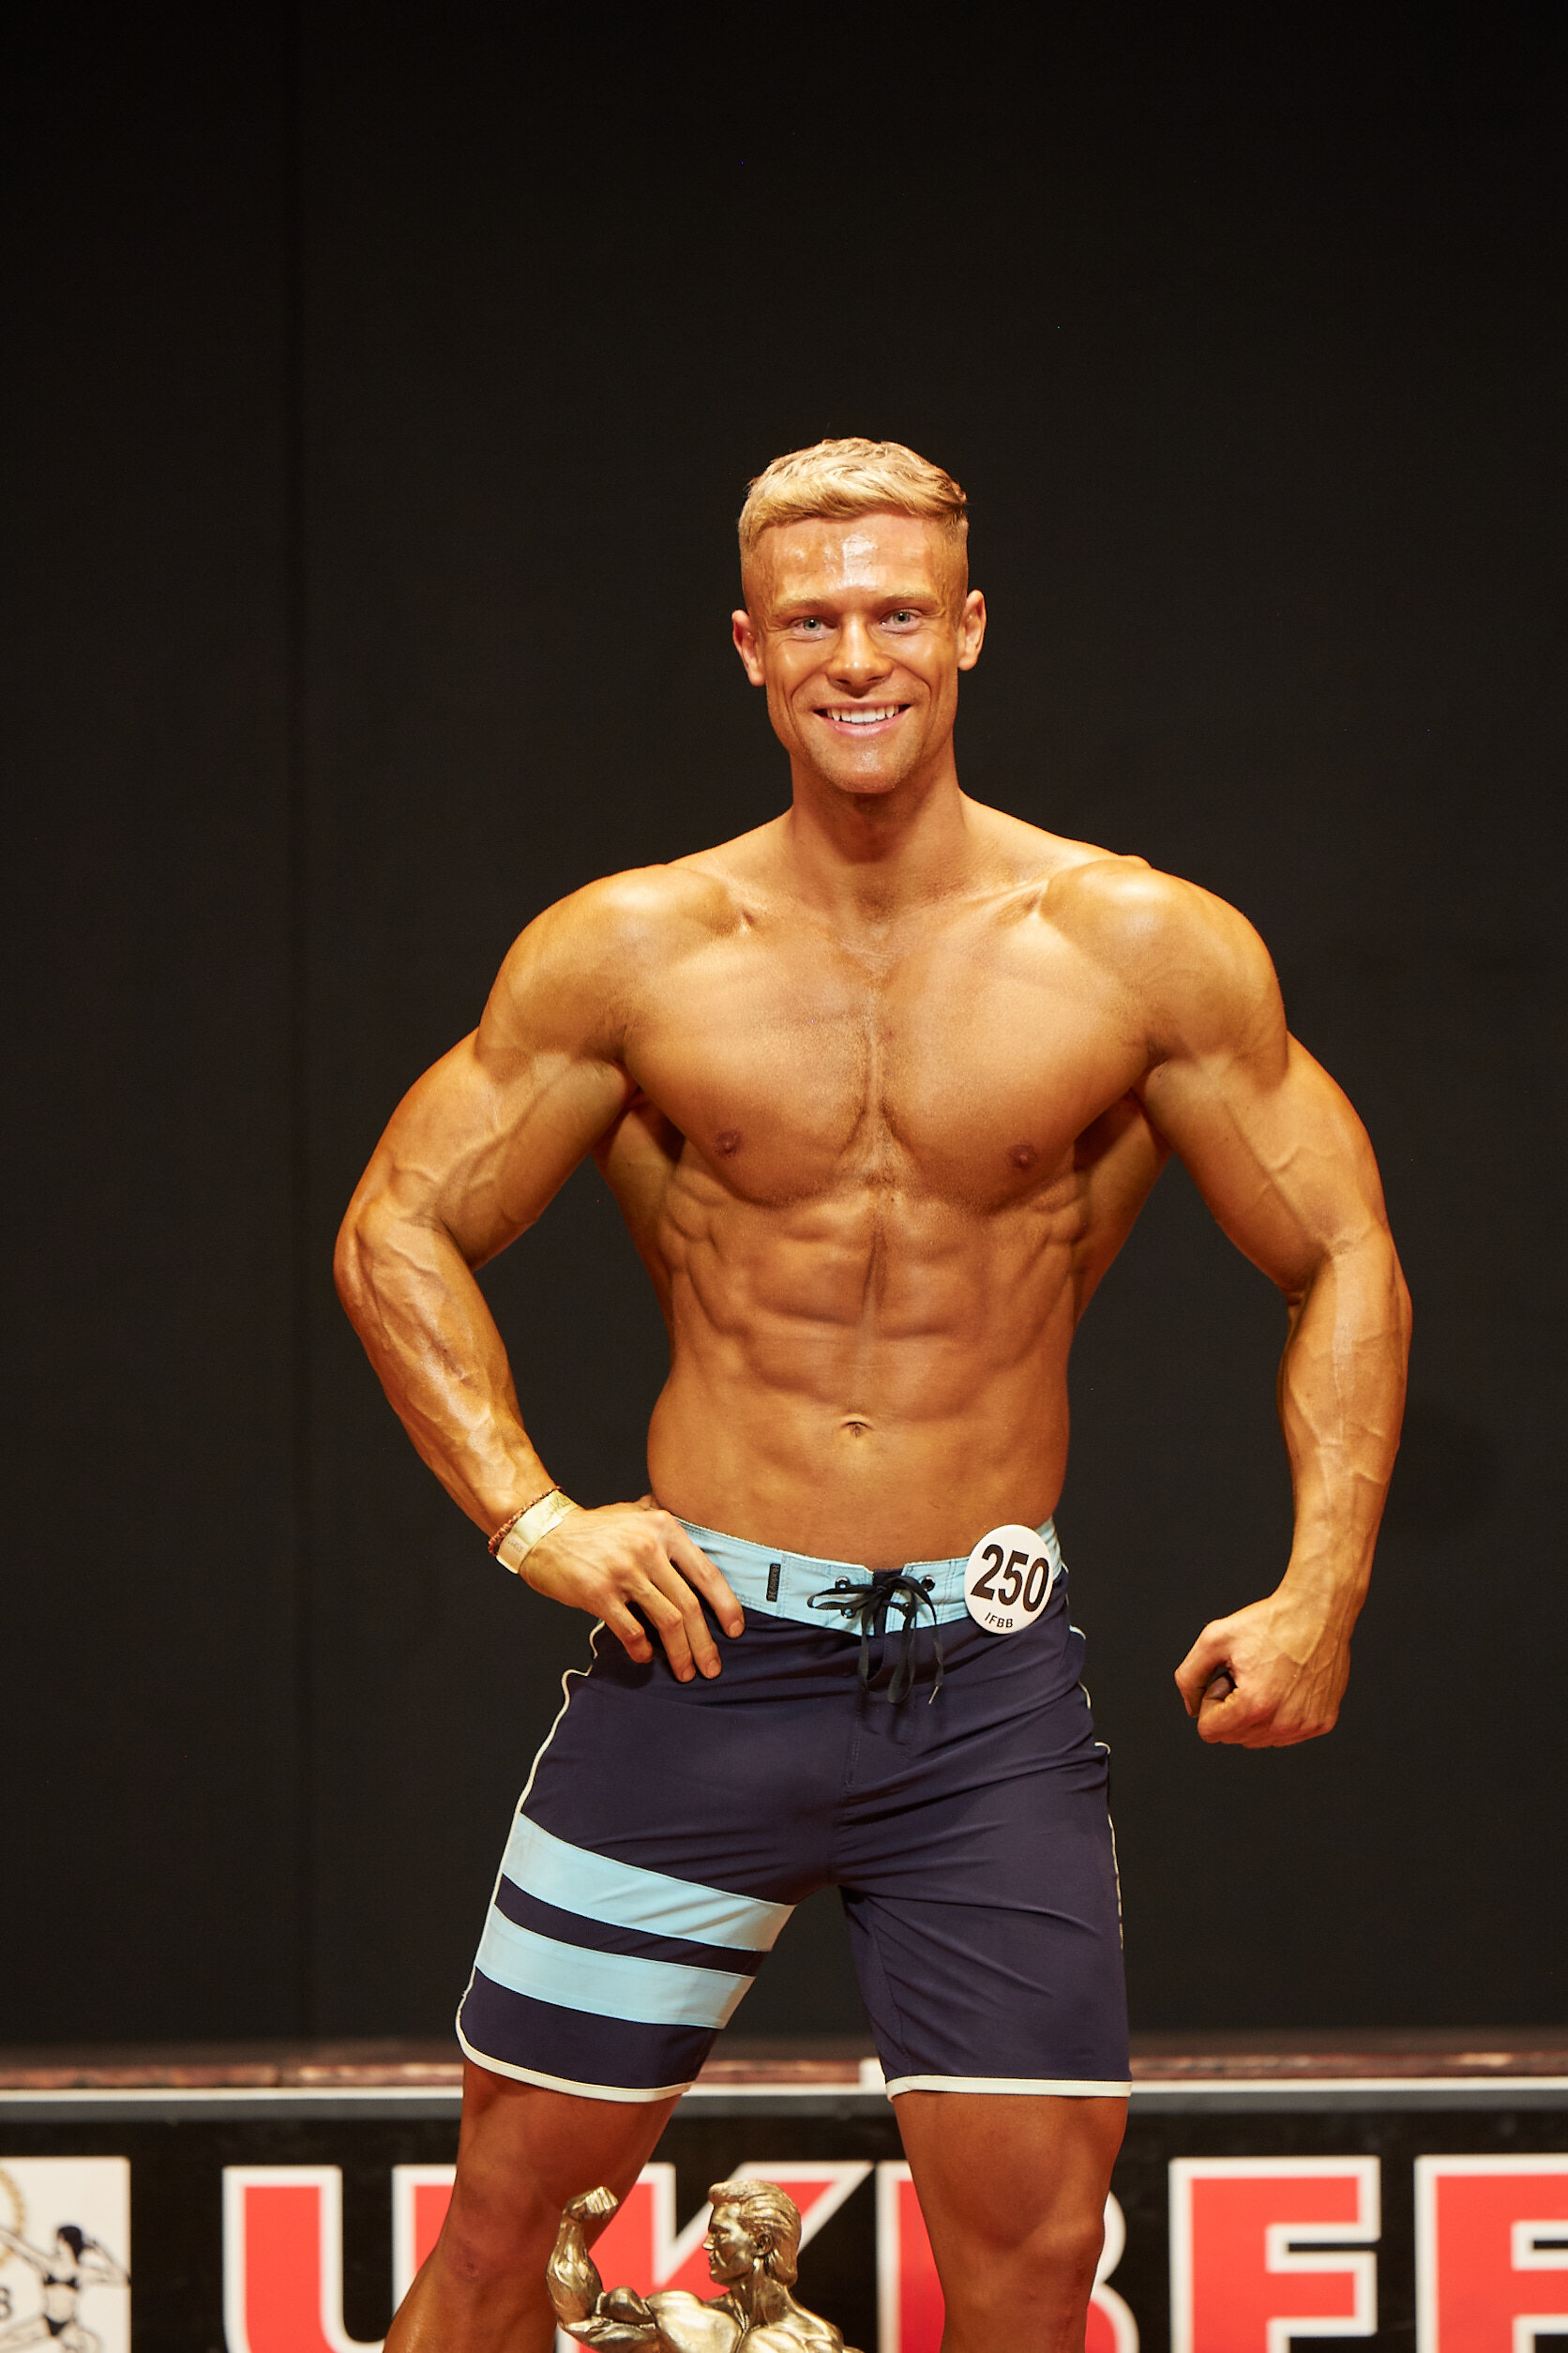 Muscular men's physique champion Harley Judge.